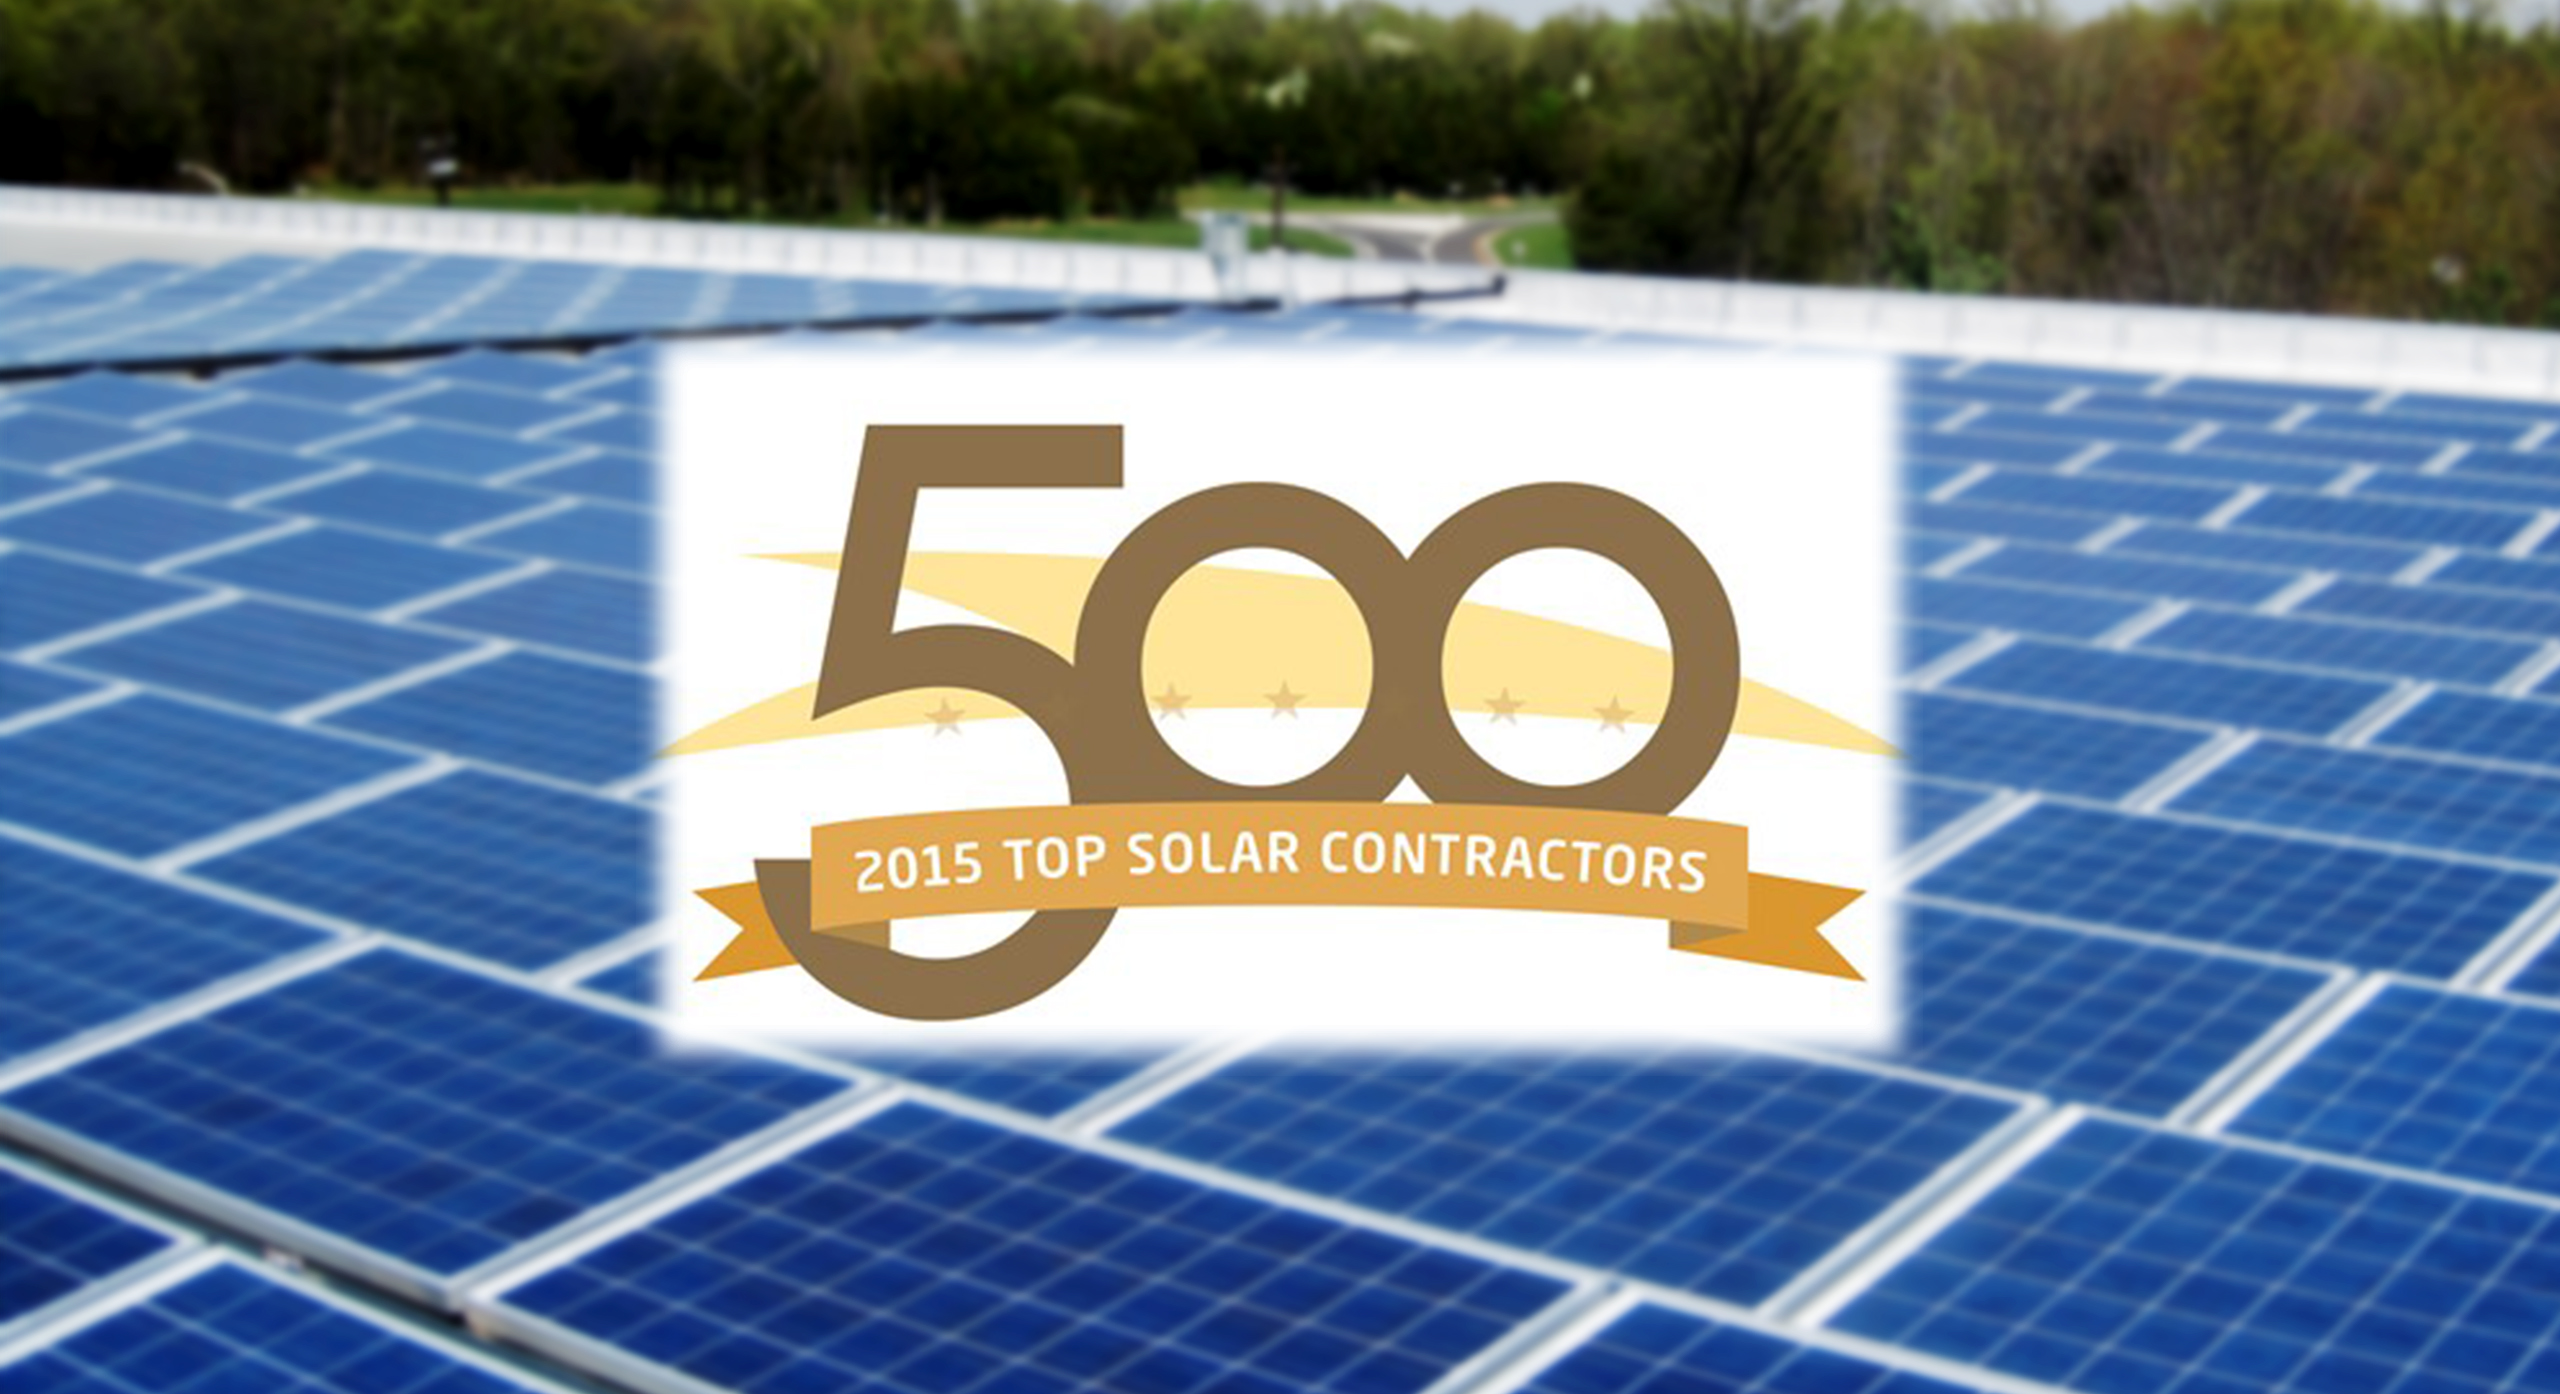 Conti Named Among Top Solar Contractors in US